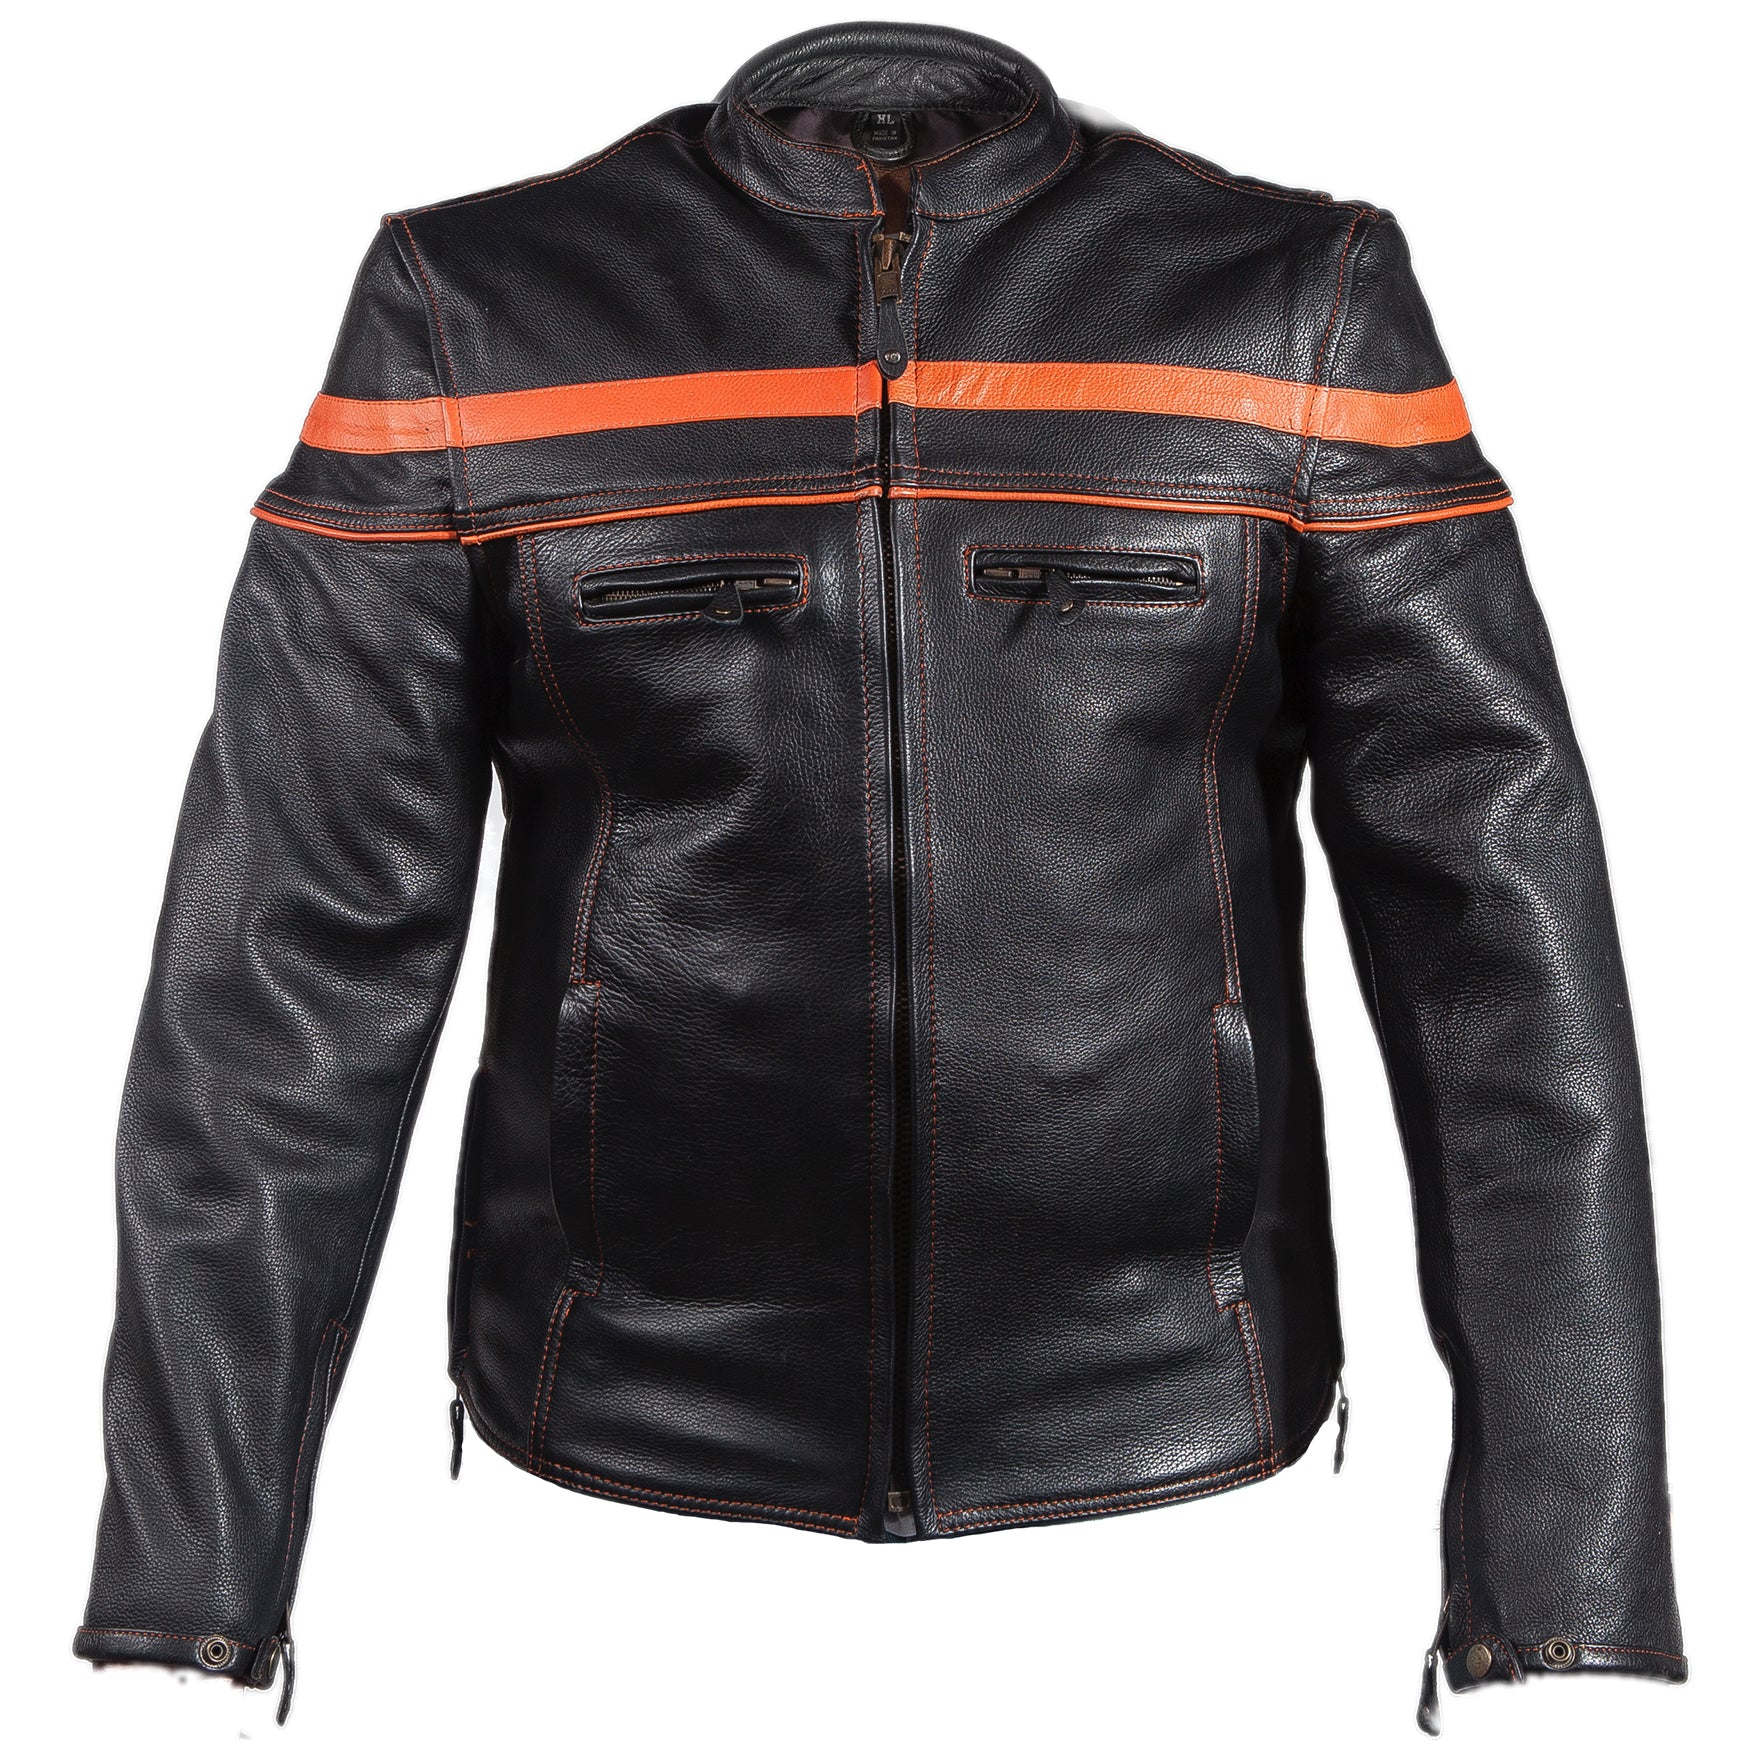 Diapo Leather Men's Black Rivet Center Zip with Red Stripe Cowhide Vegetable Tanned Leather Jacket